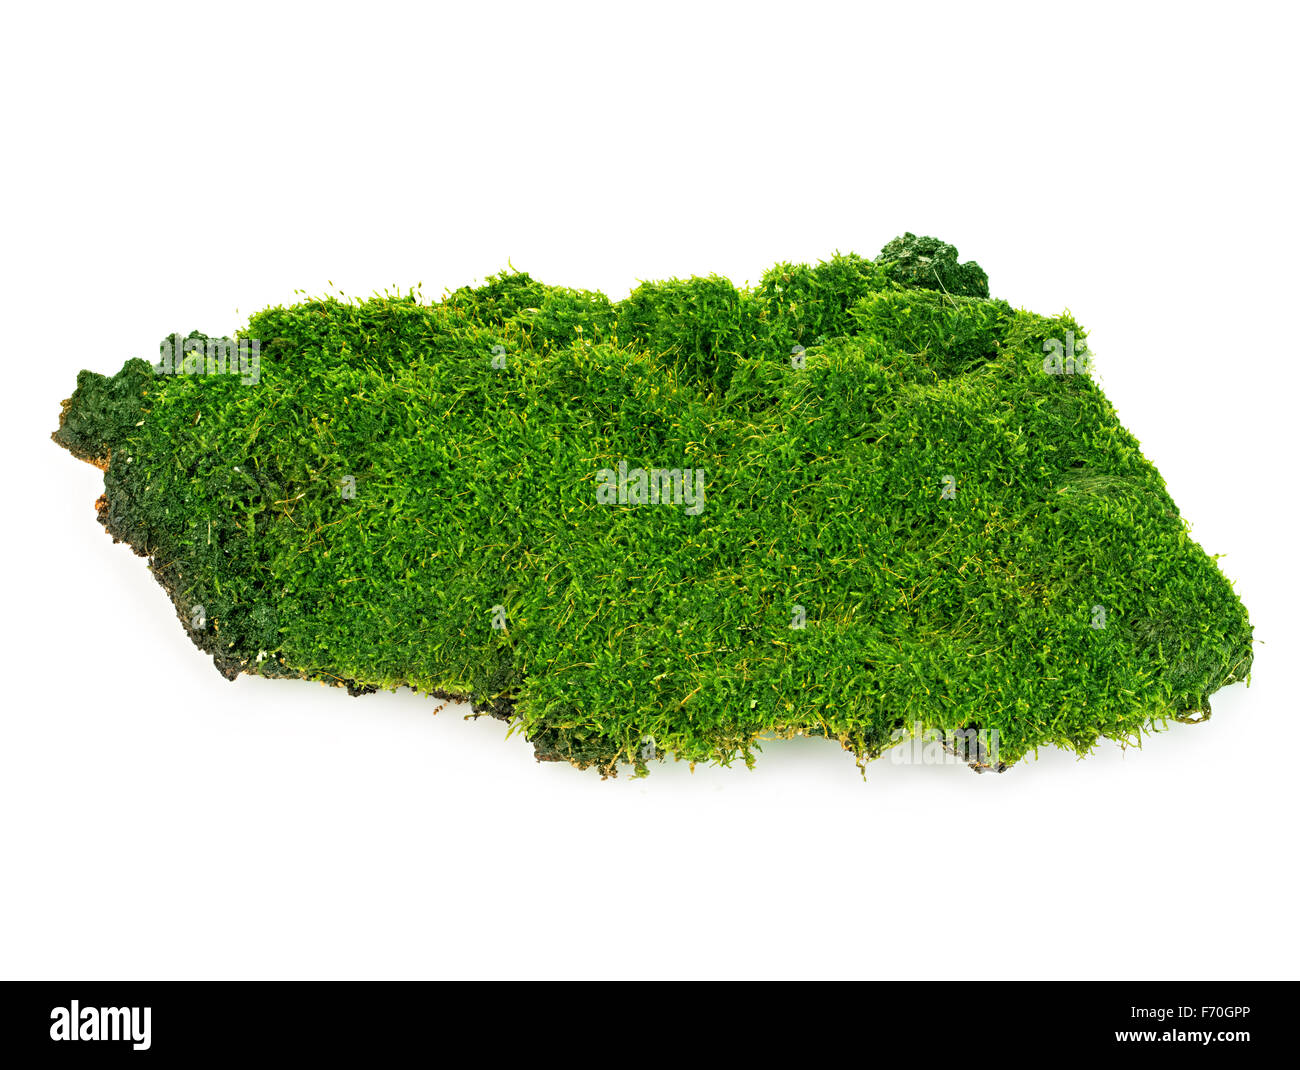 Beautiful green moss close-up isolated on a white background. - Stock Image